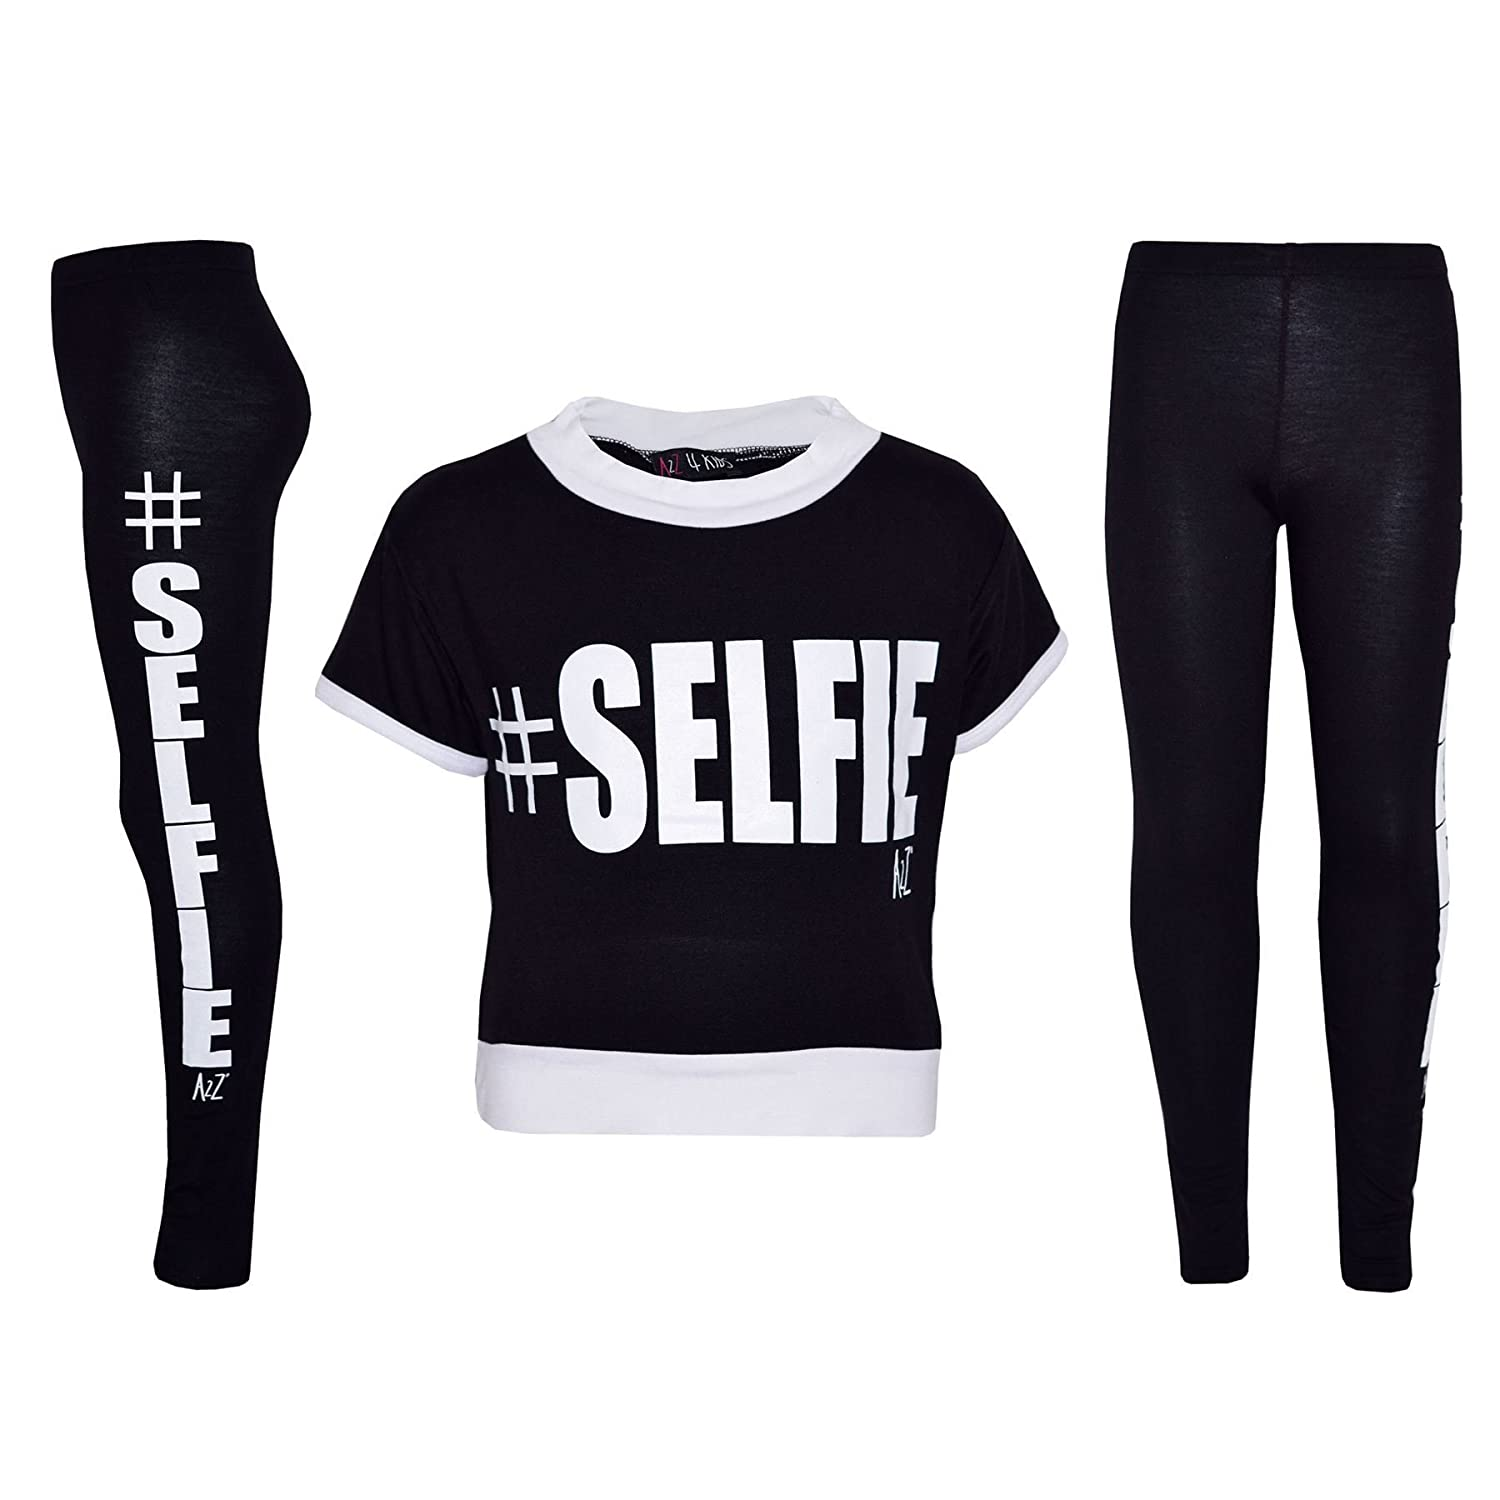 44fe6cc86dfb7 Available Color; Black, Neon Pink & Royal Blue. A2Z 4 Kids® Girls Top Kids  Designer #Selfie Print Crop Top & Fashion Legging Set.